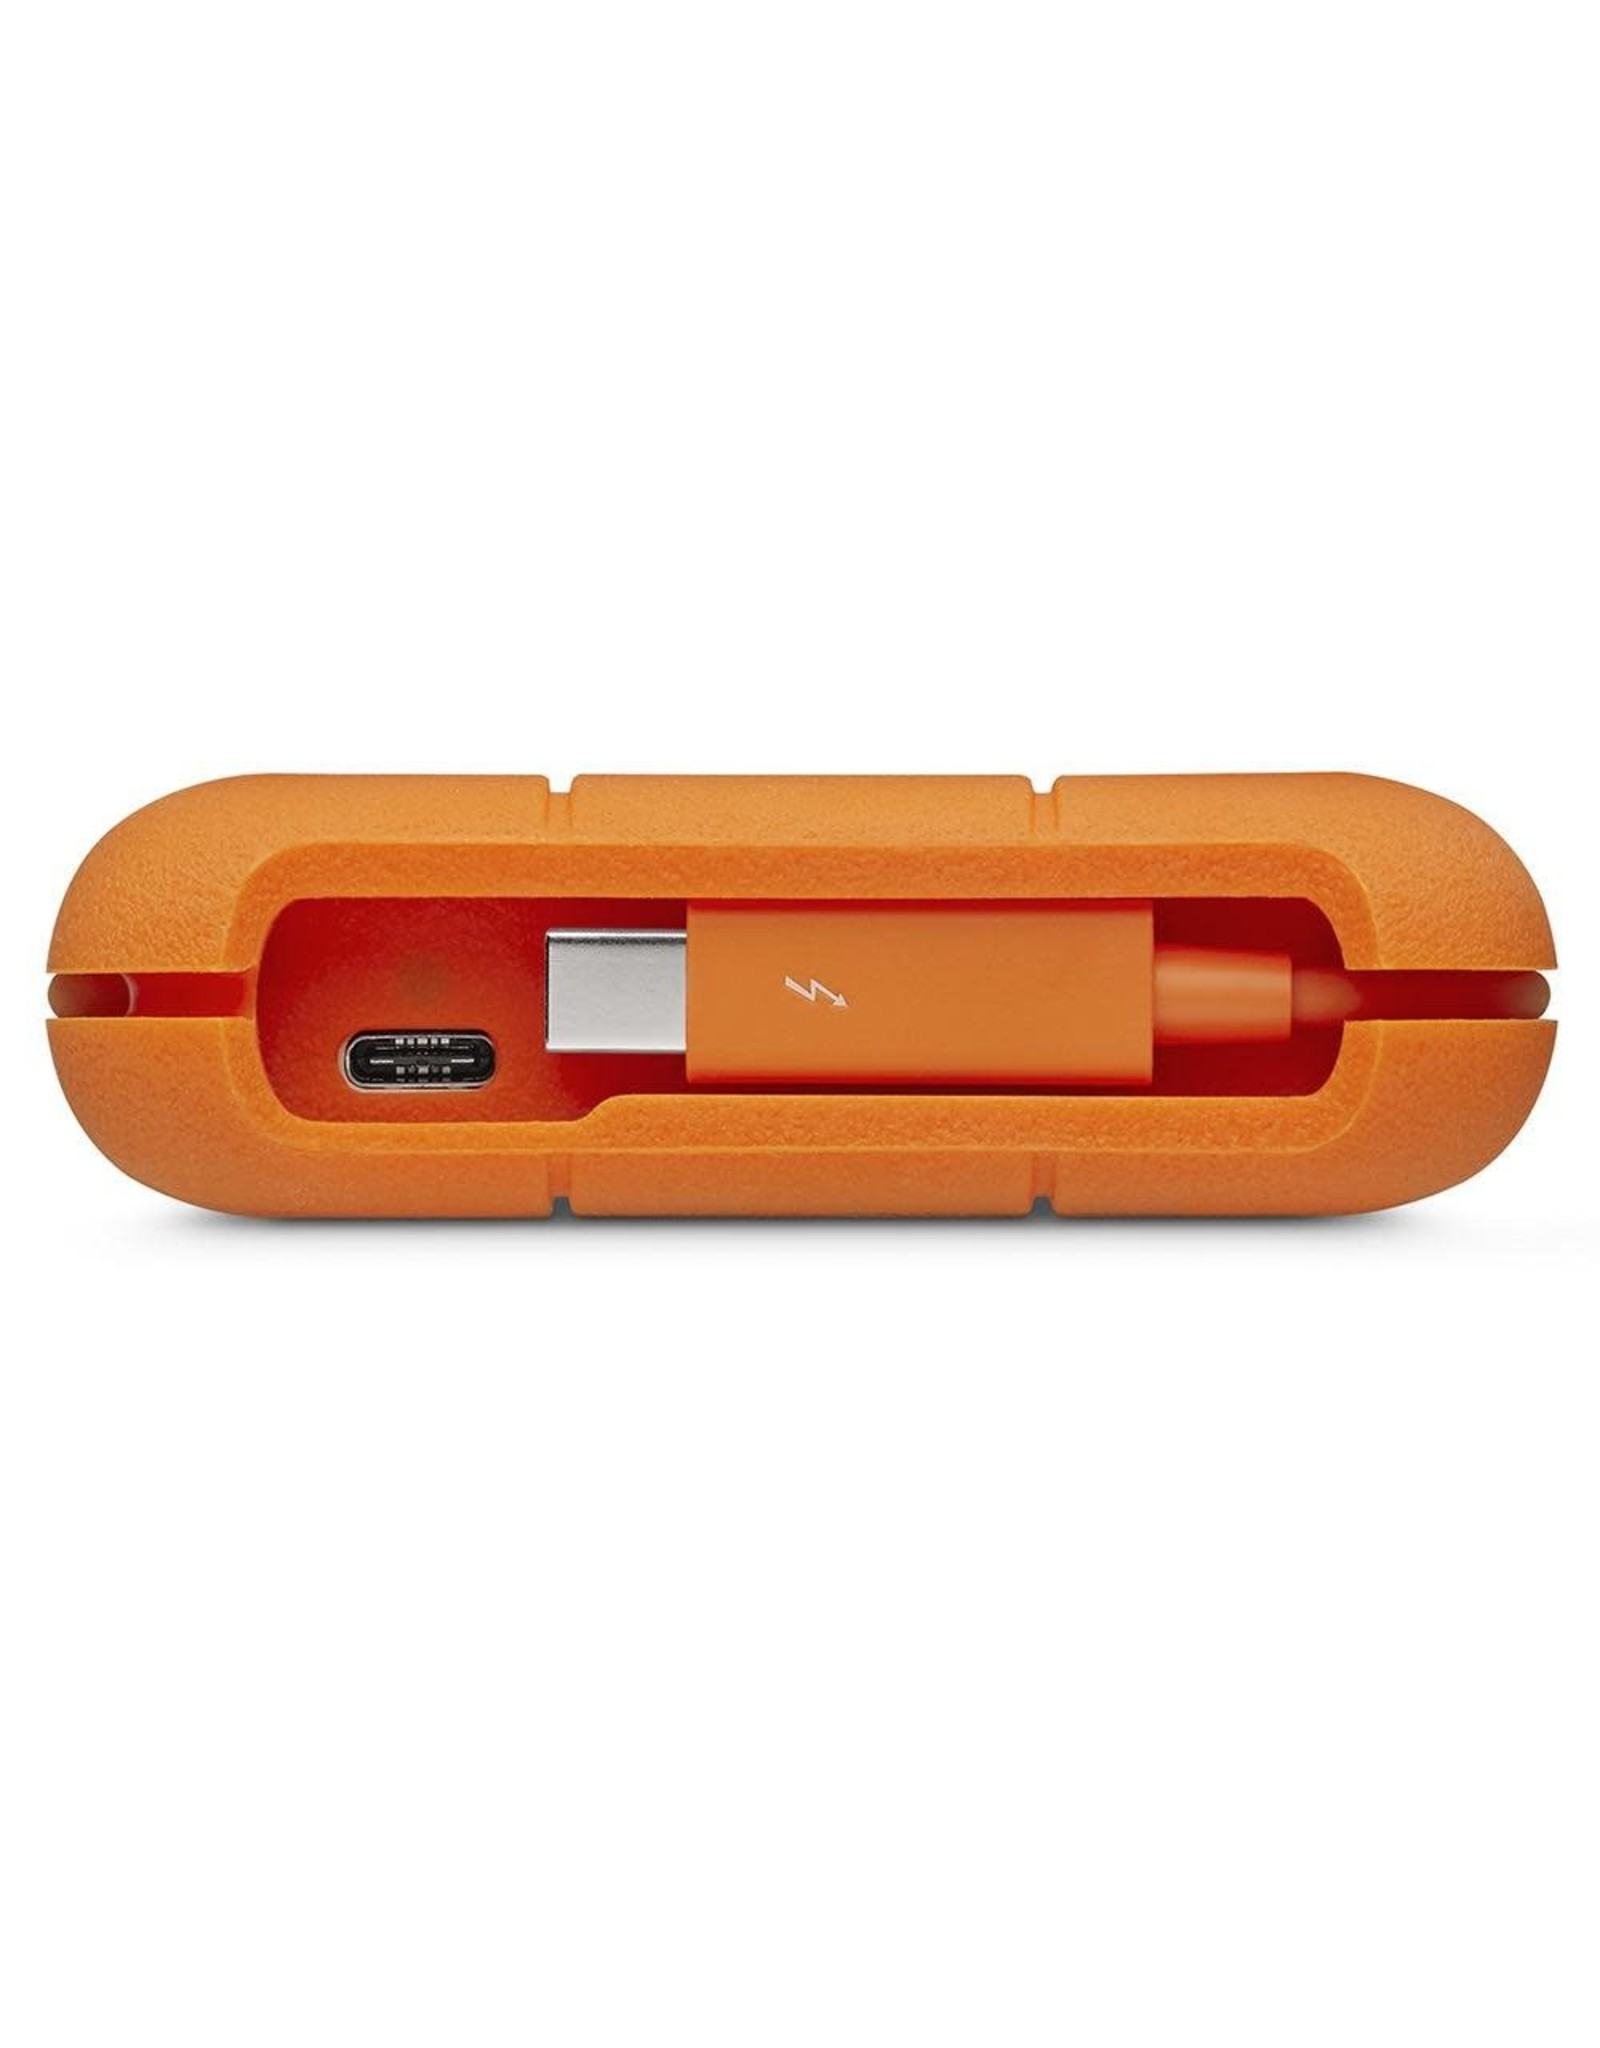 Lacie LaCie 5TB Rugged USB-C Mobile Hard Drive